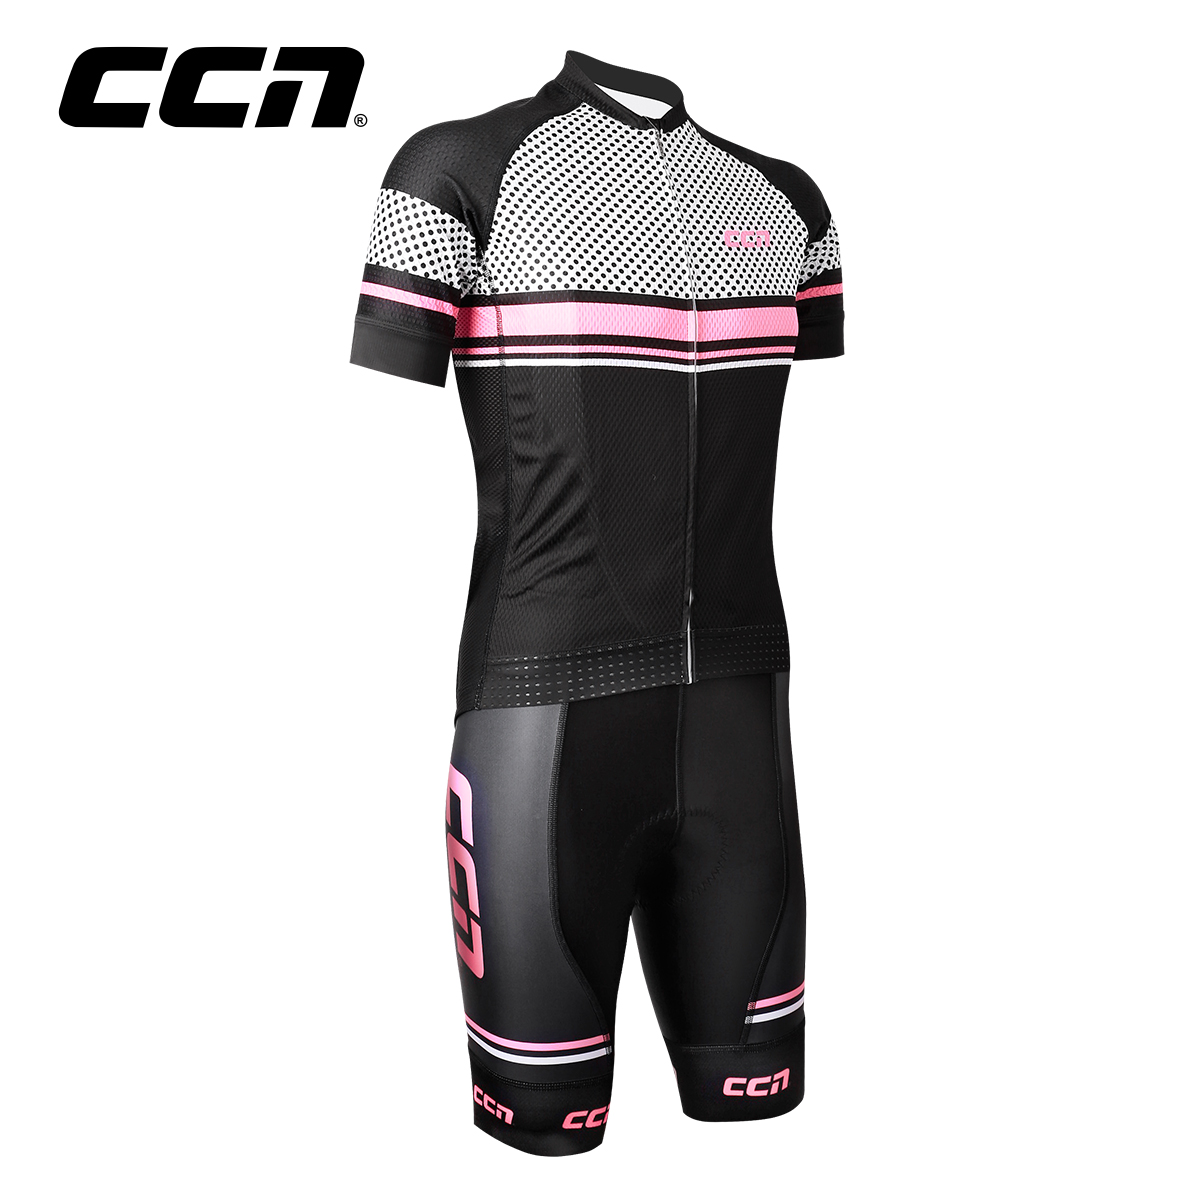 CCN new Jersey 2017 Spring Summer Professional Edition Road Mountain Bike Strap Short Sleeve Cycling Set